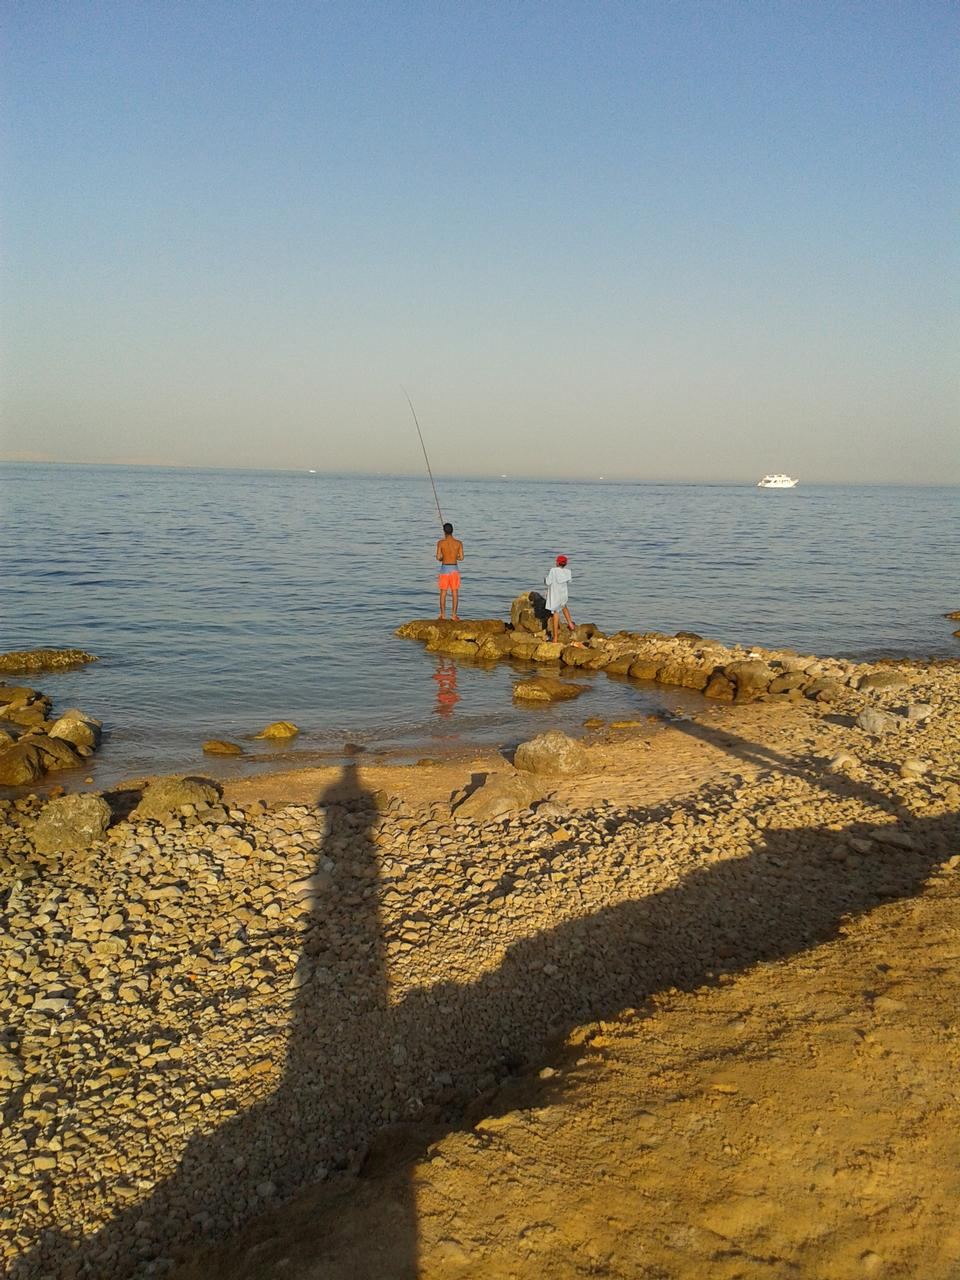 Someone fishing in Red Sea